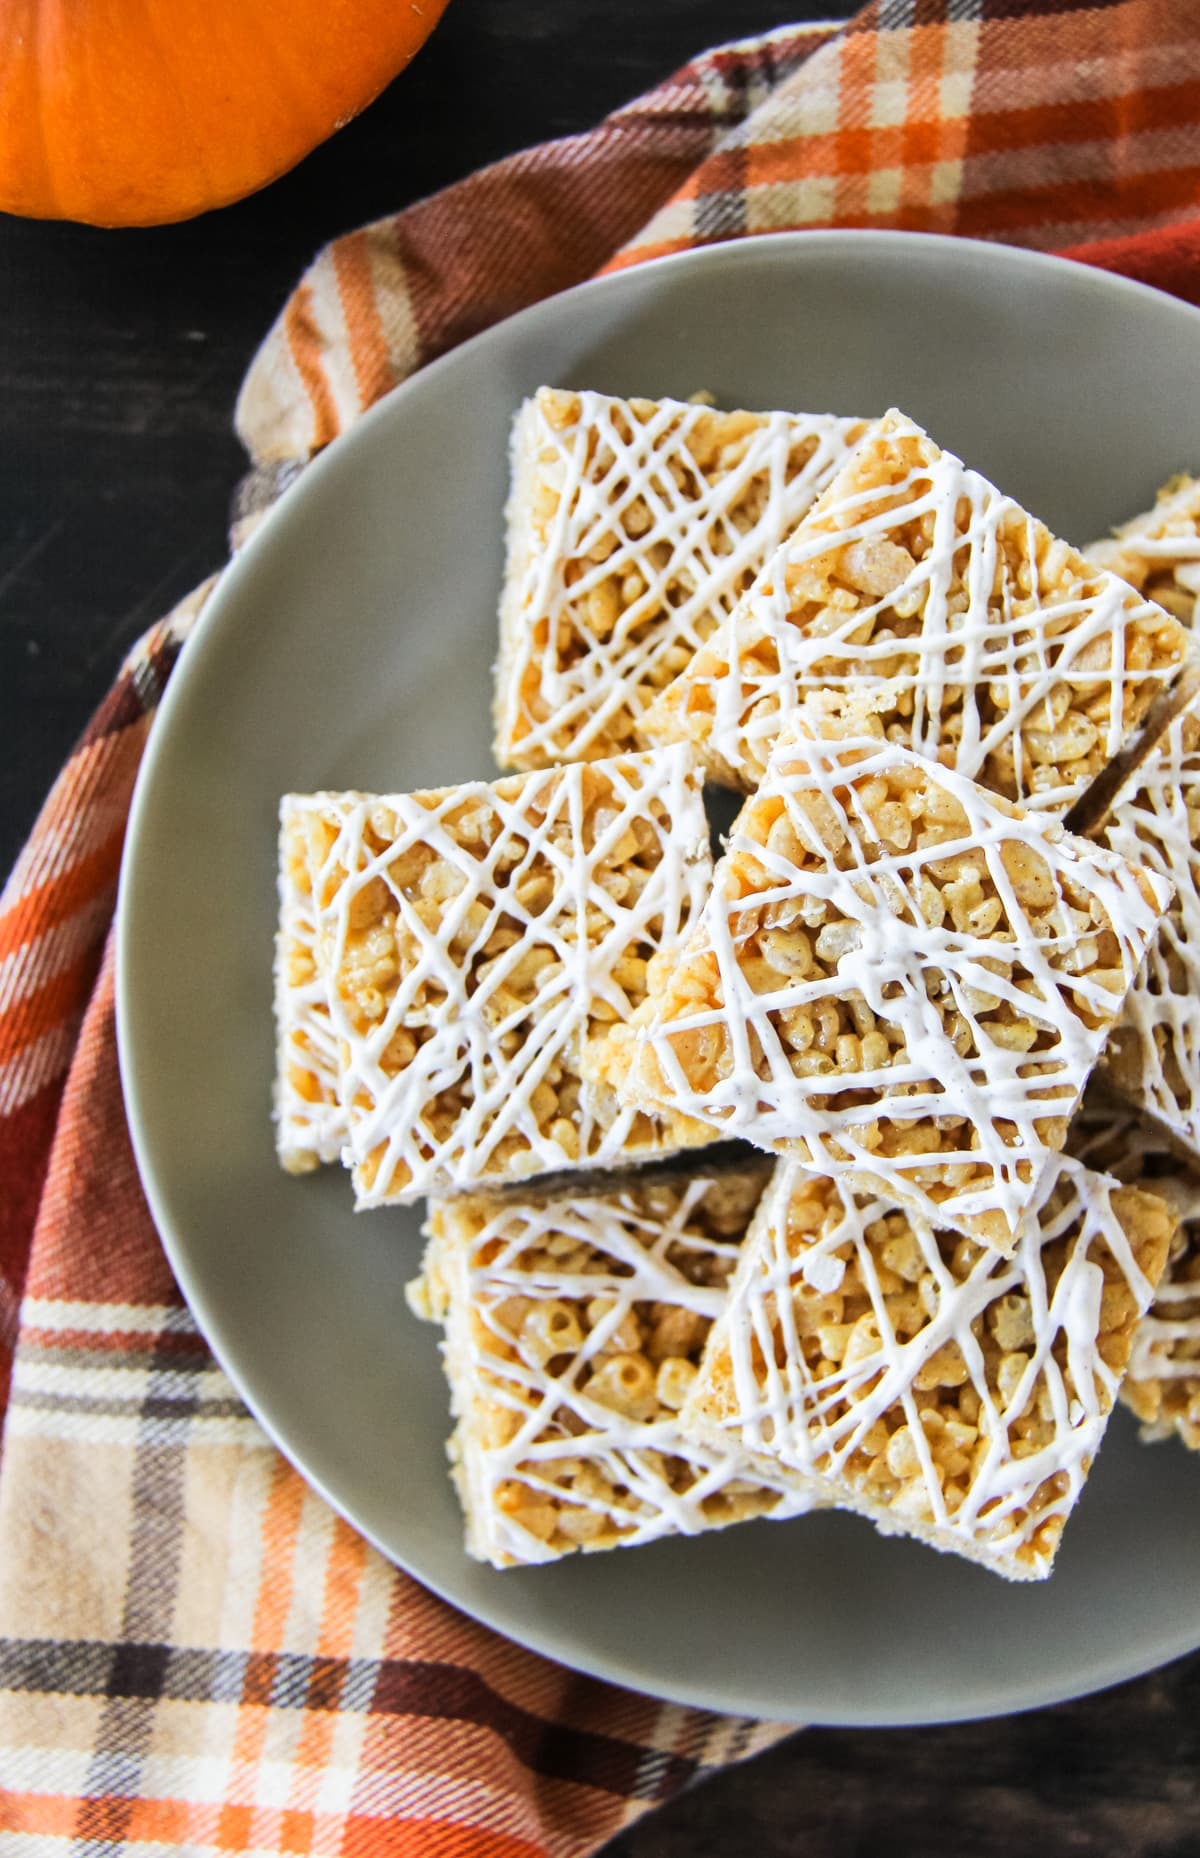 a top down view of half of a plate of squares of Pumpkin Spice Rice Krispie Treats sitting on a grey plate. the plate sits on an orange plaid napkin